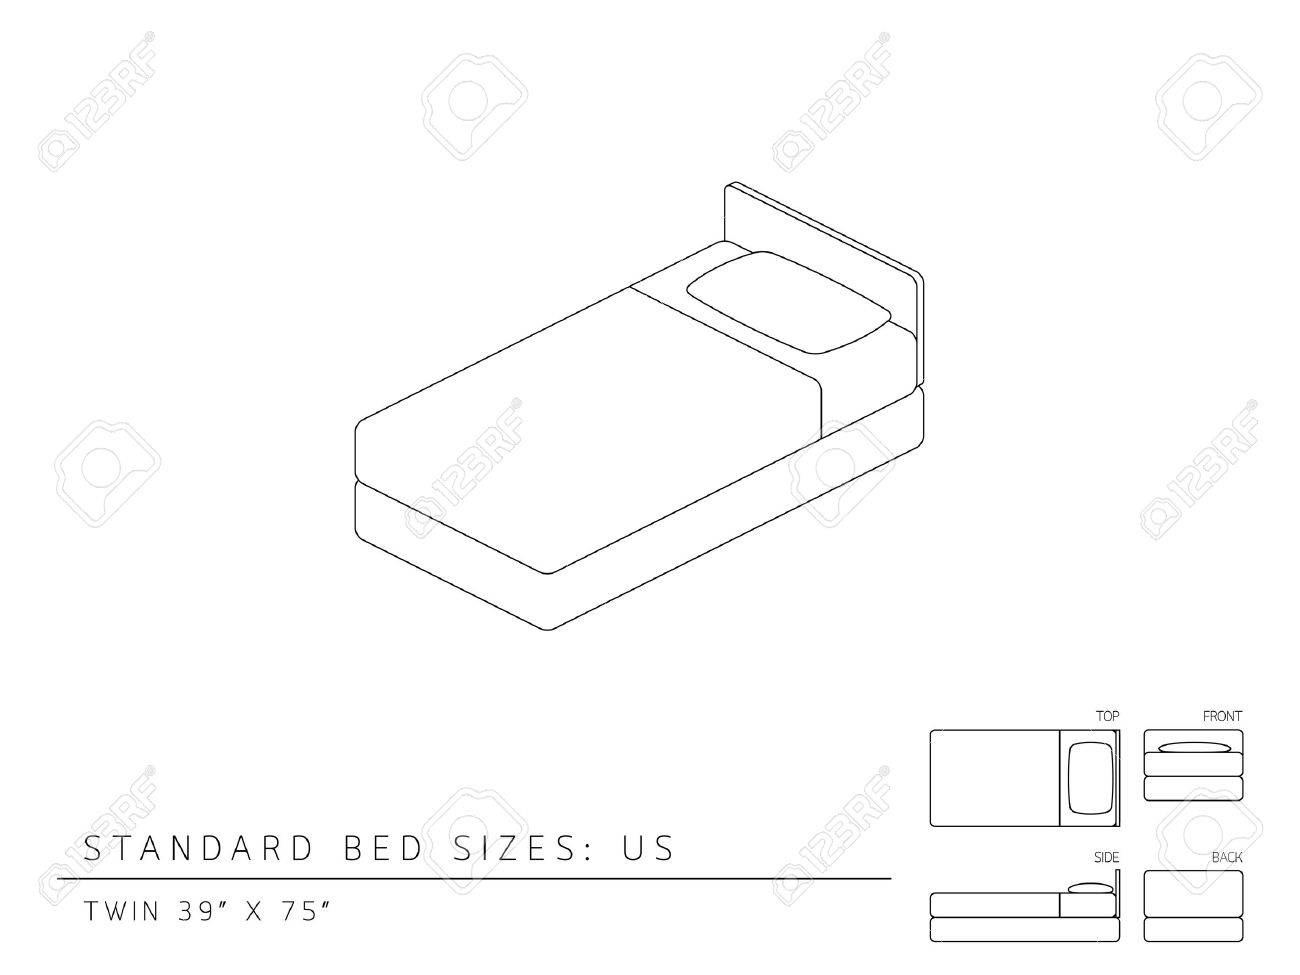 1300x975 Standard Bed Sizes Of Us (United States Of America) Twin Size